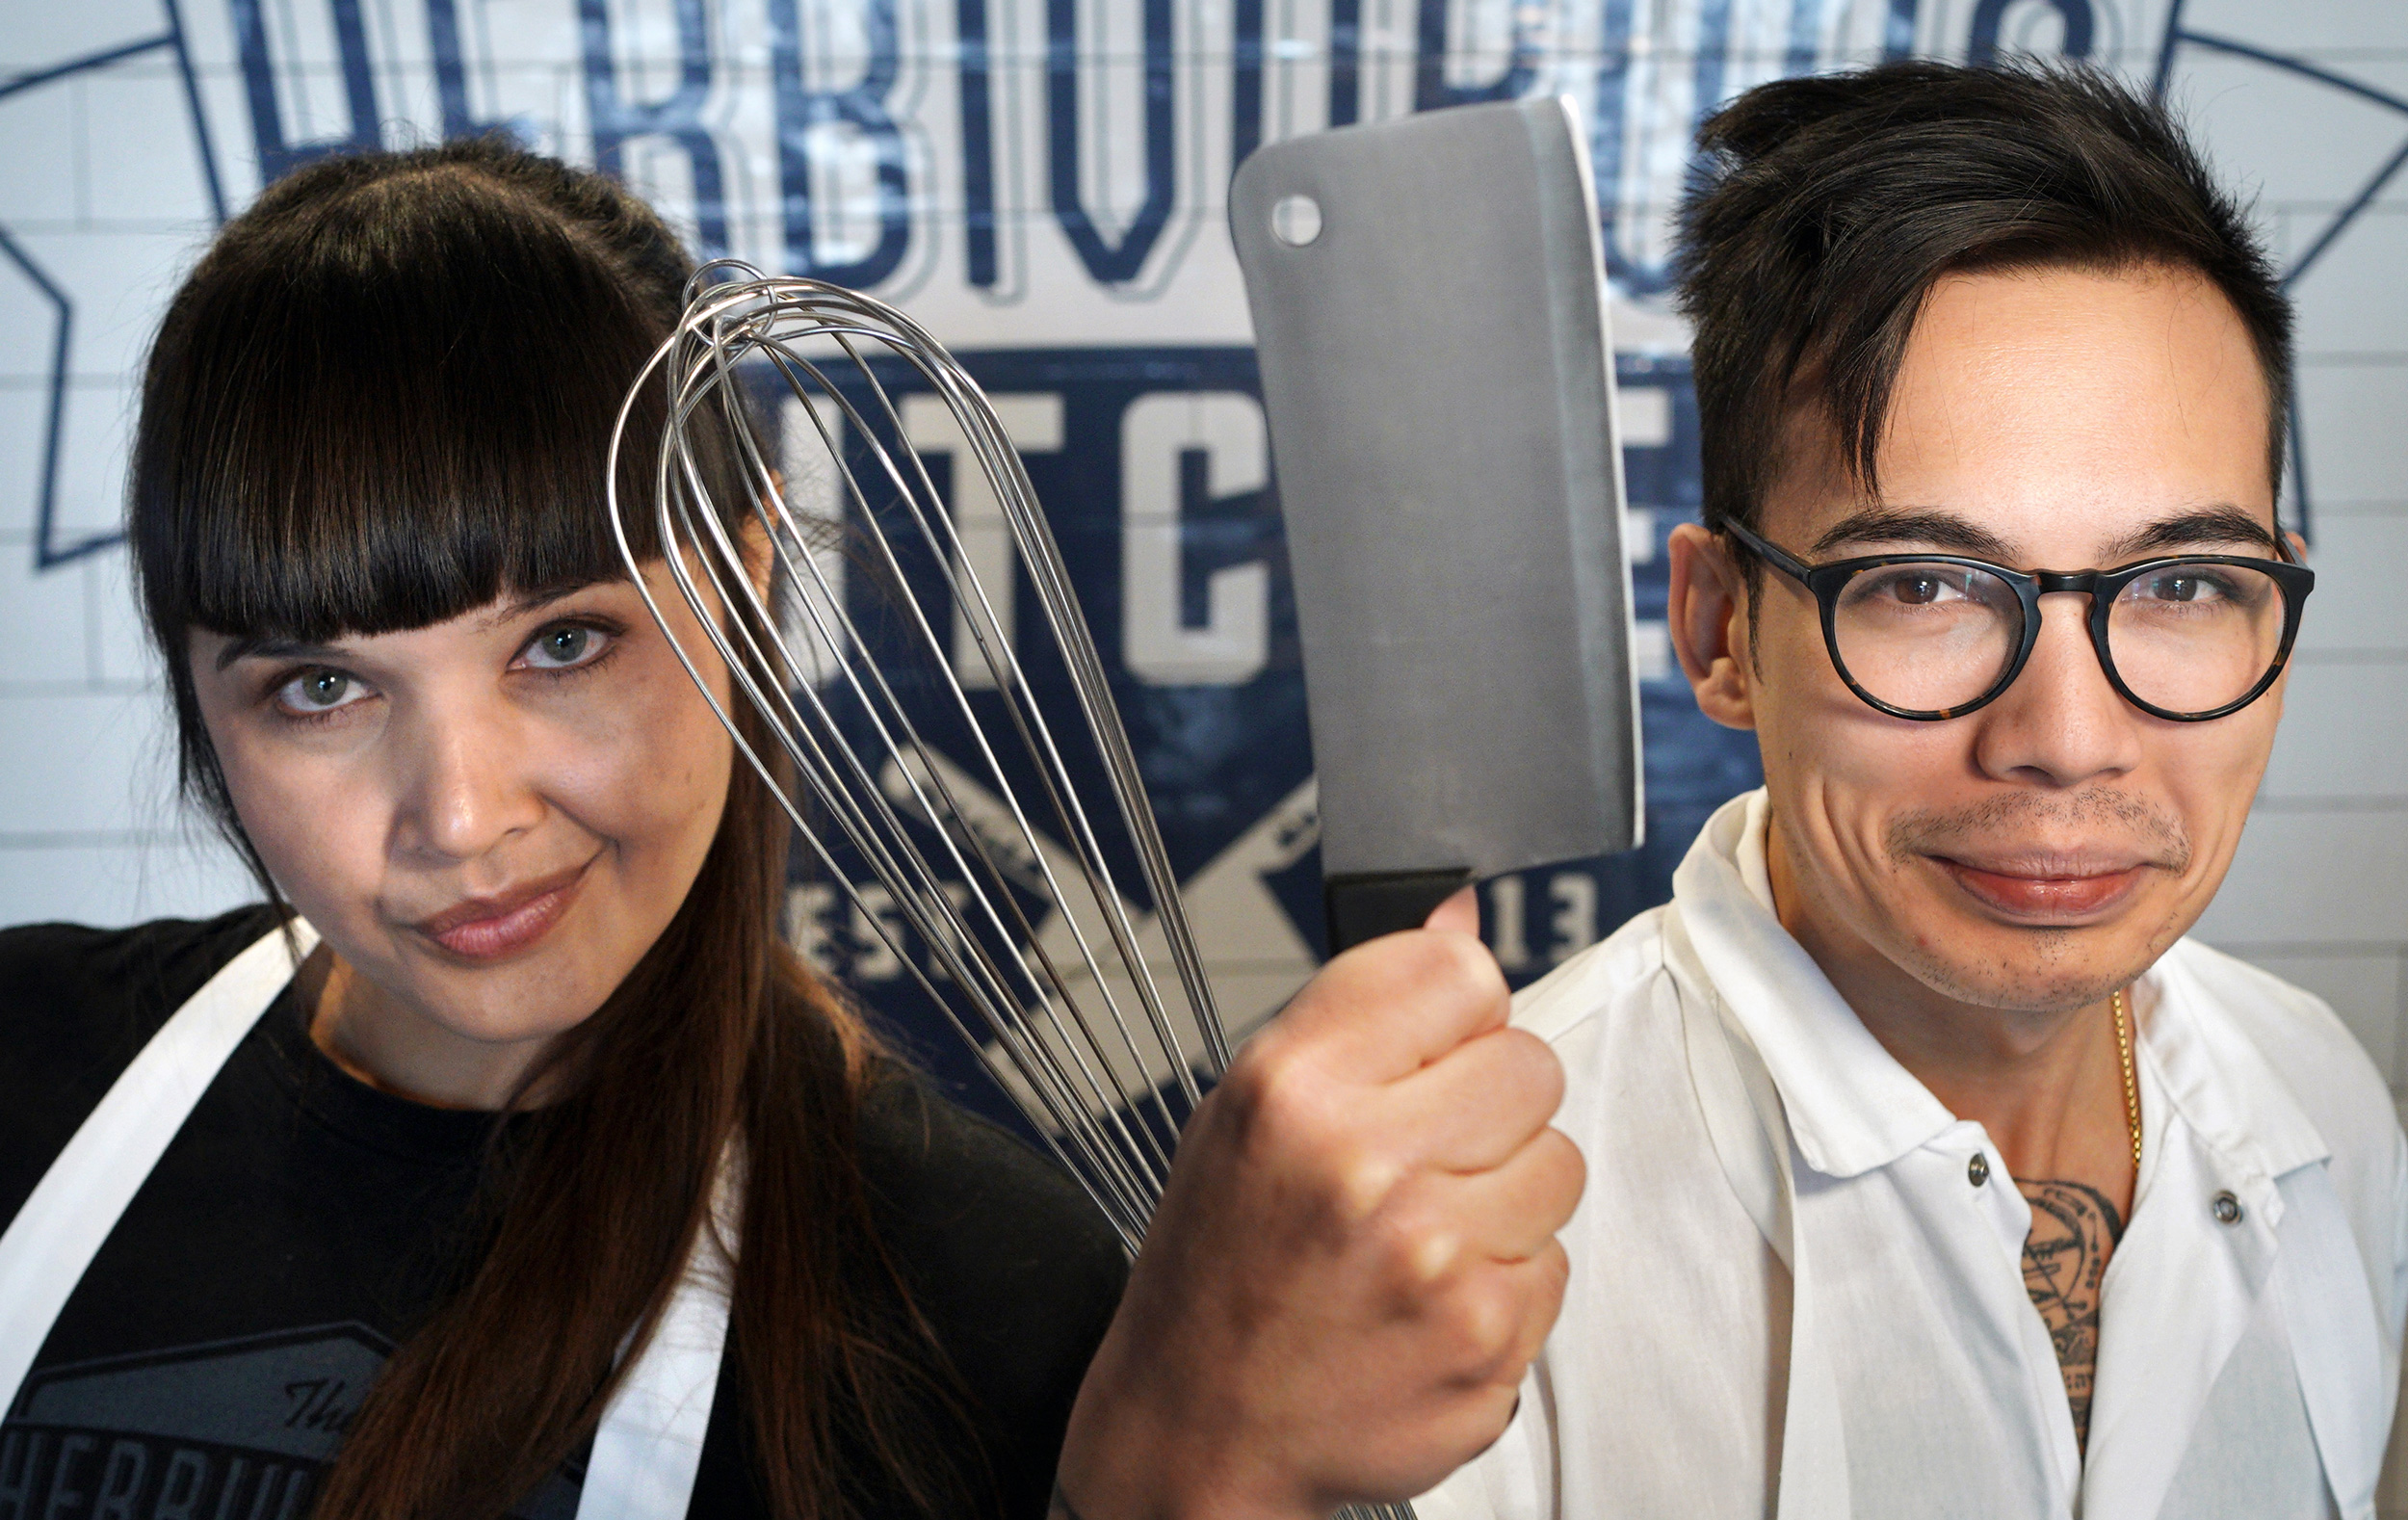 Aubry Walch and Kale Walch are co-owners of the Herbivorous Butcher, a nationally recognized vegan brand based in Minneapolis.